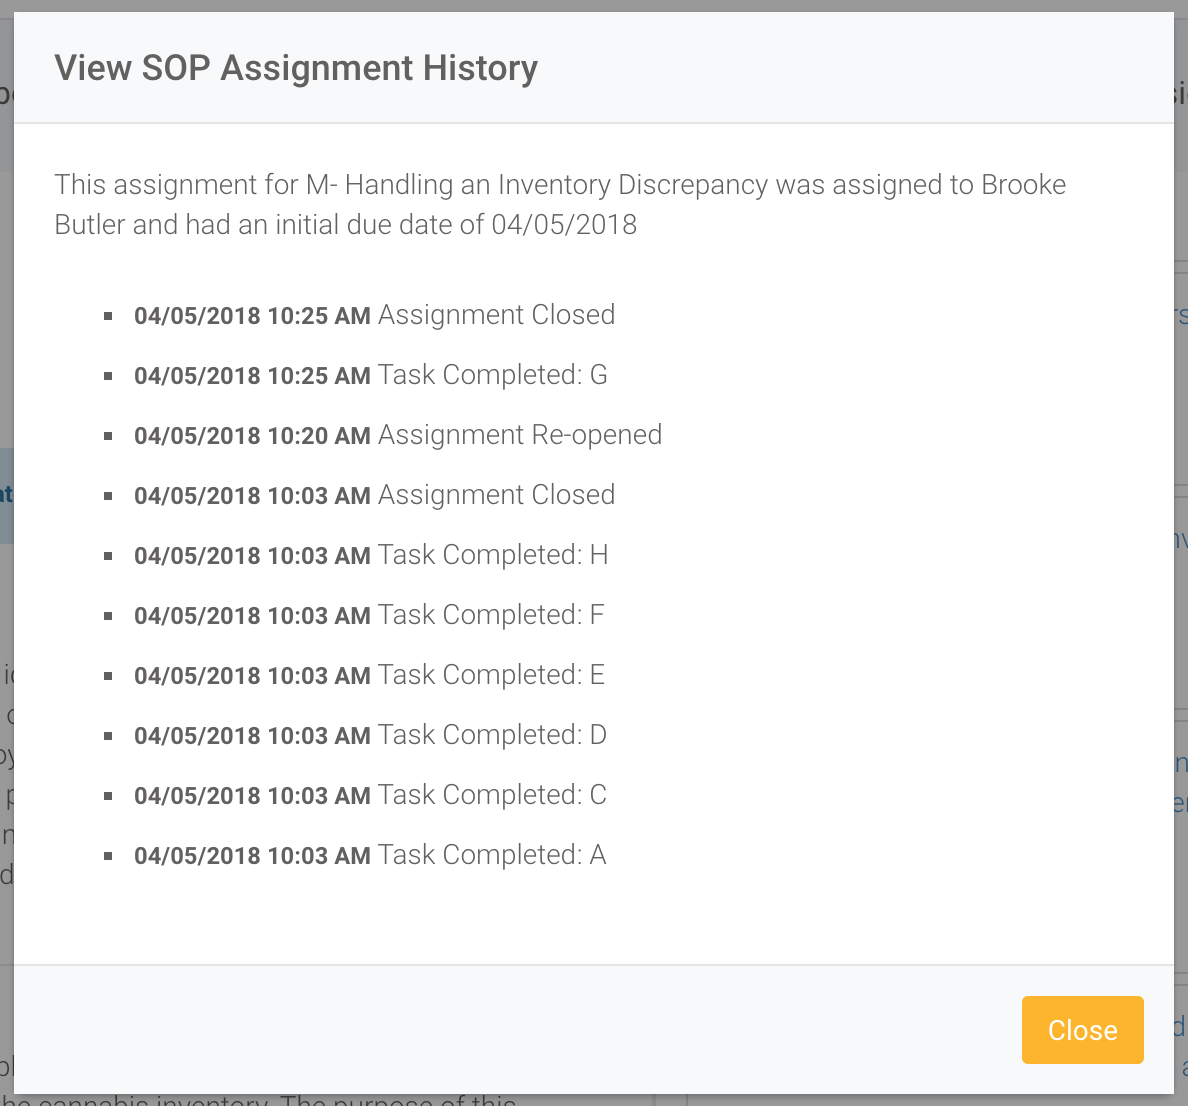 SOPs_view_assignment_history_modal_zendesk.png